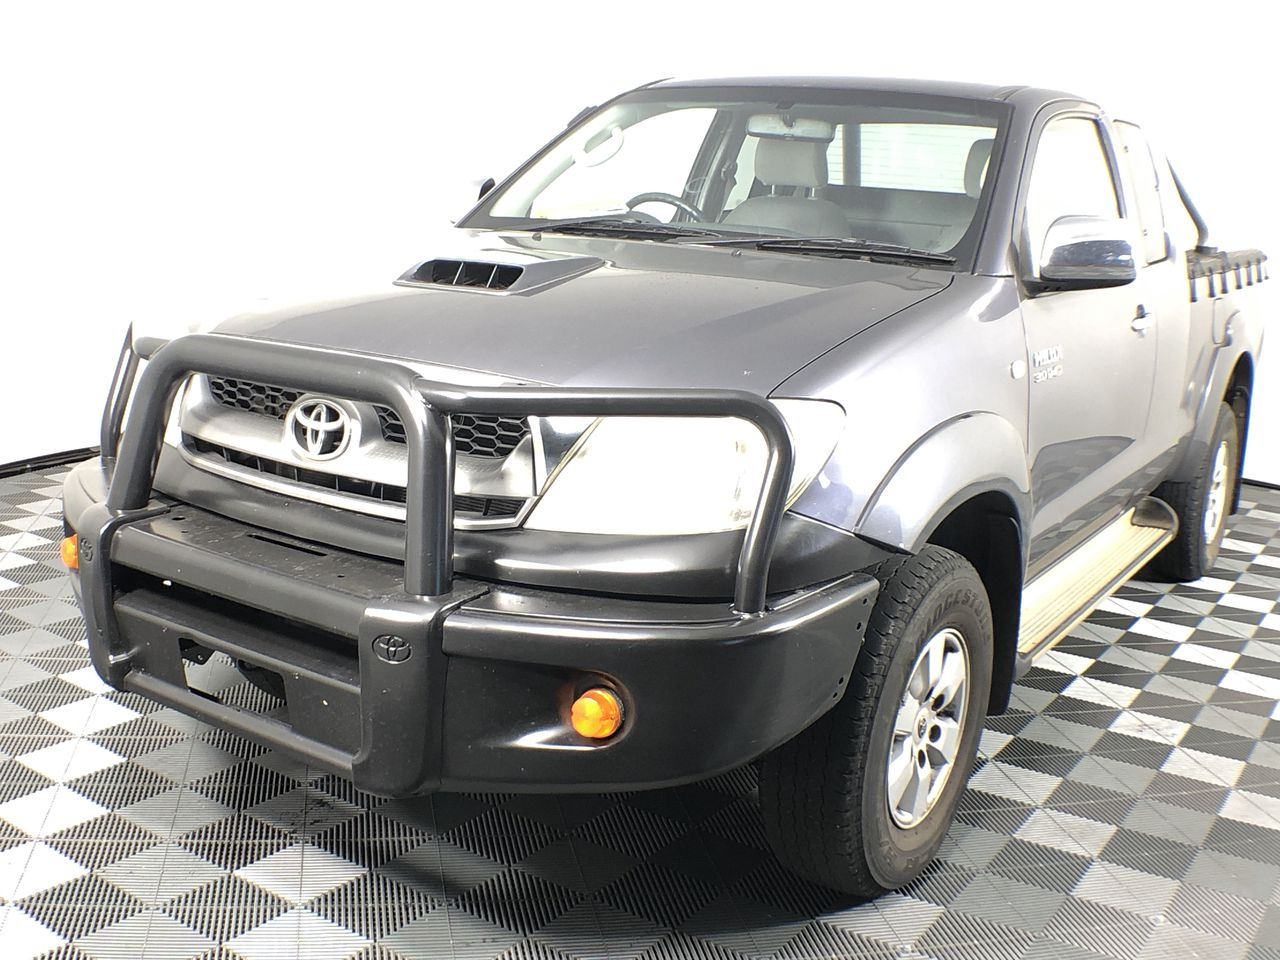 2009 Toyota Hilux Extra Cab 4x4 SR5 Turbo Diesel Manual Ute